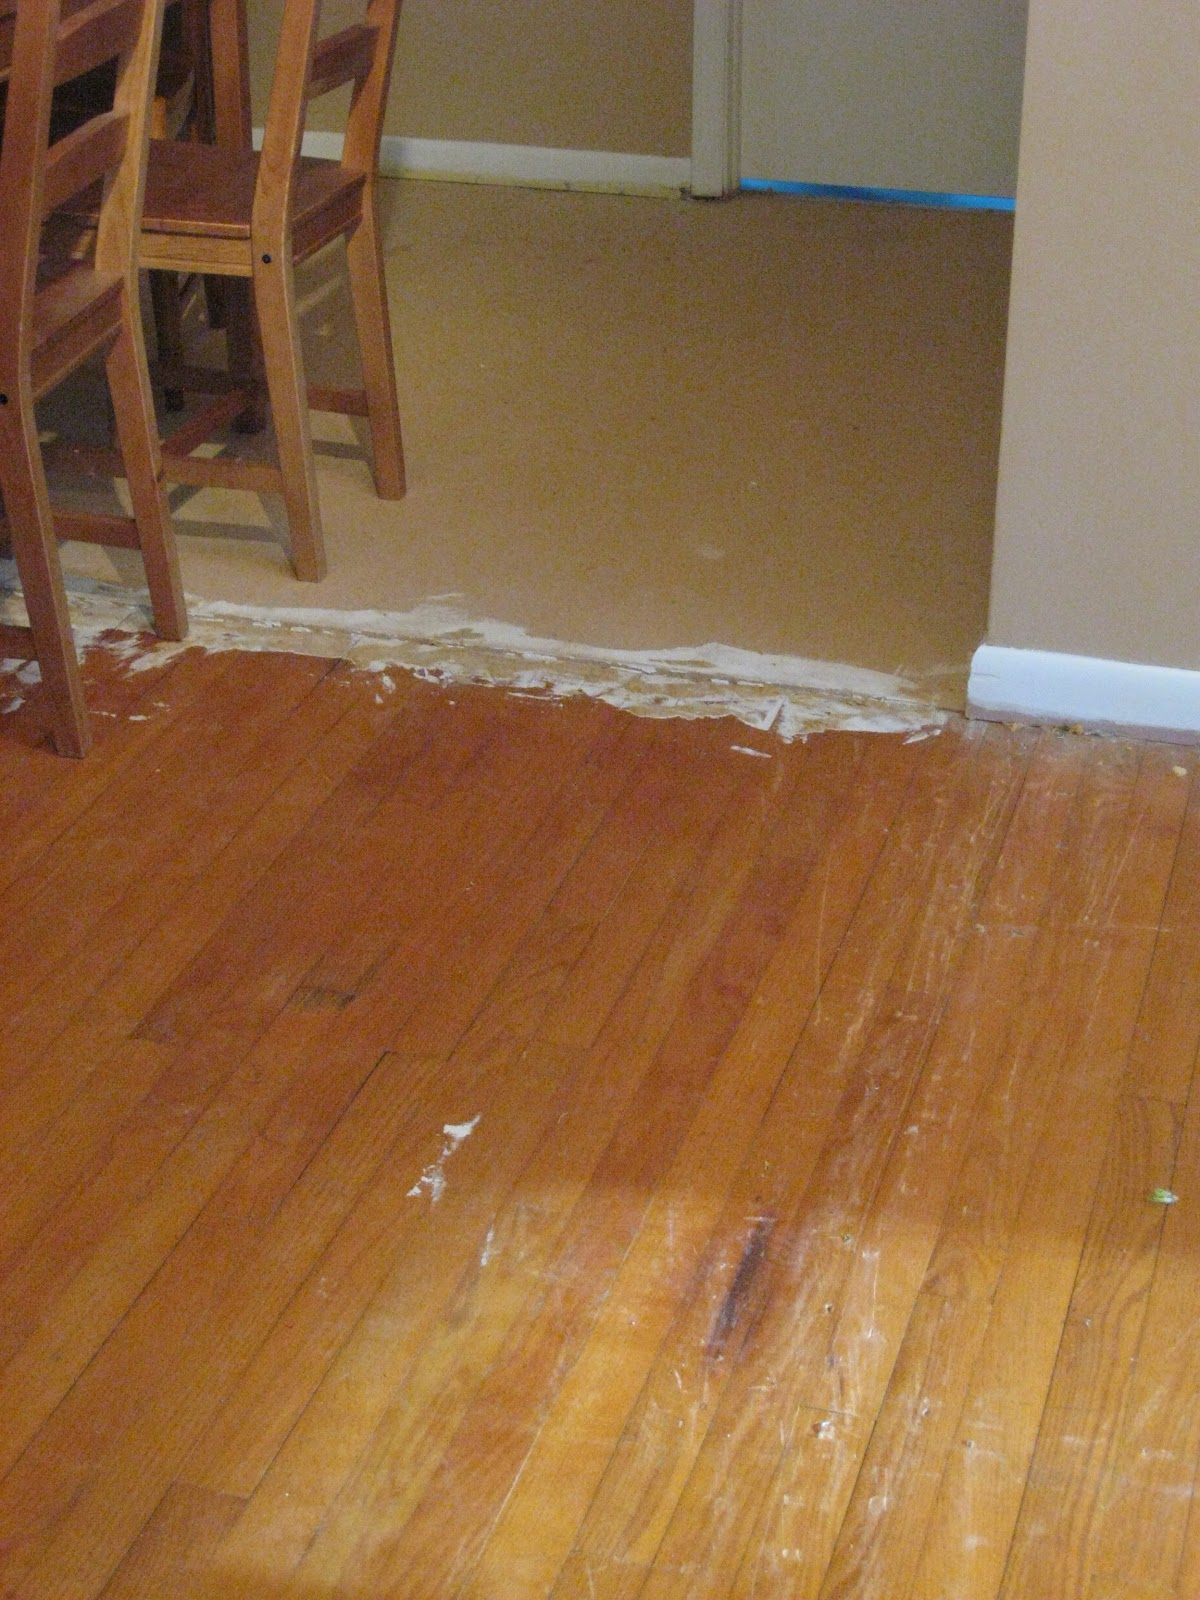 Antijenic drift new floors and a new look for the house for Hardwood floors uneven